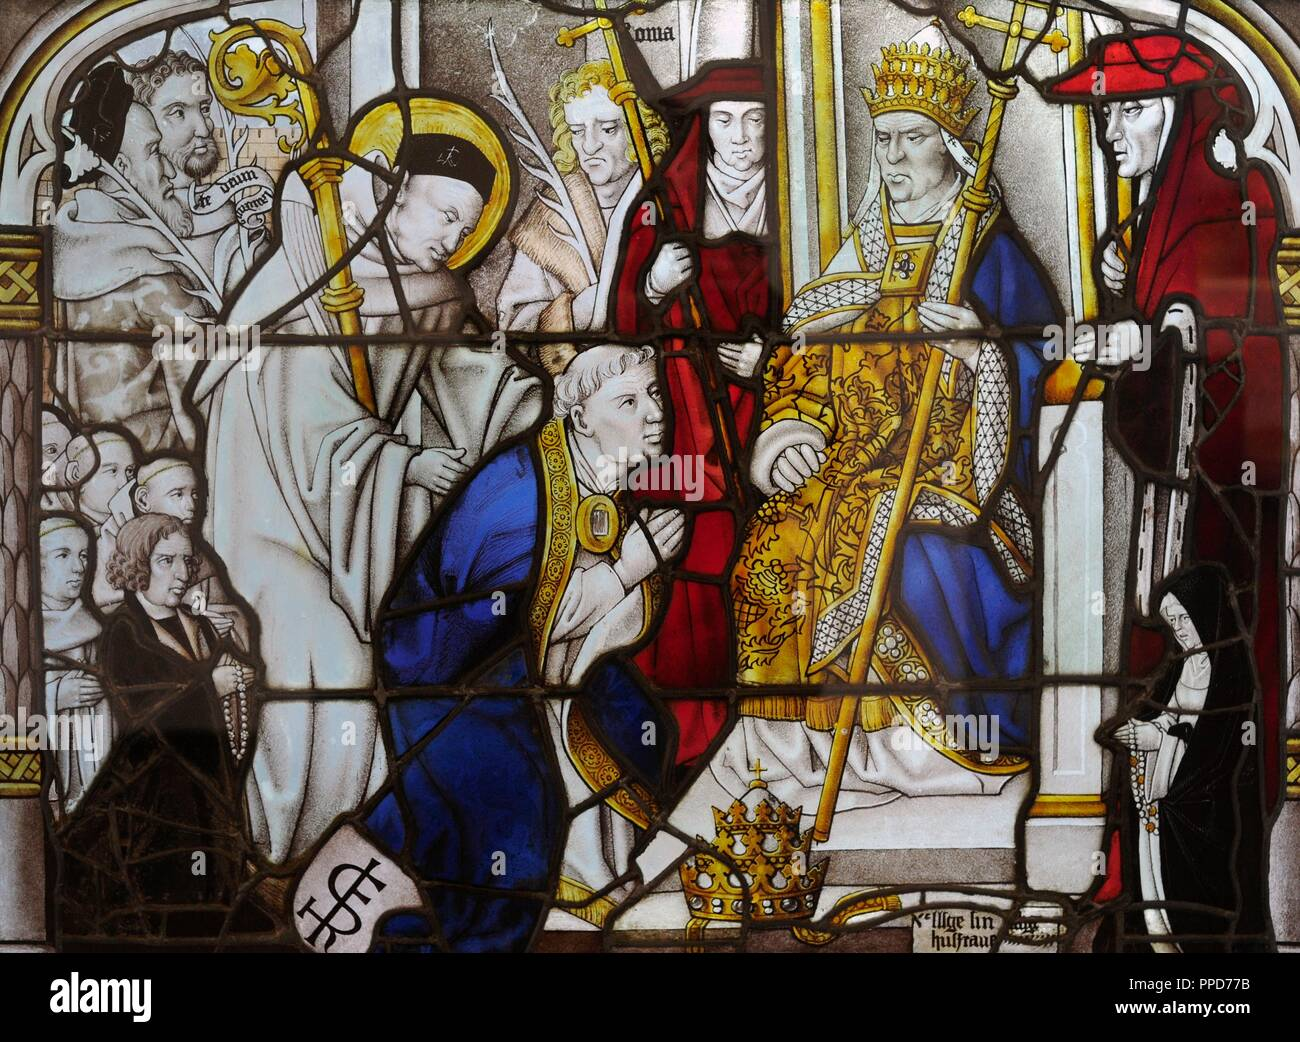 St. Bernard at Second Lateran Council in Rome, convoked by Pope Innocent II in 1193. Stained glass from Cloister of the Cistercian Monastery  of Altenberg. Germany. Master of St. Severin, 1505-1520. Schnu_tgen Museum. Cologne, Germany. - Stock Image